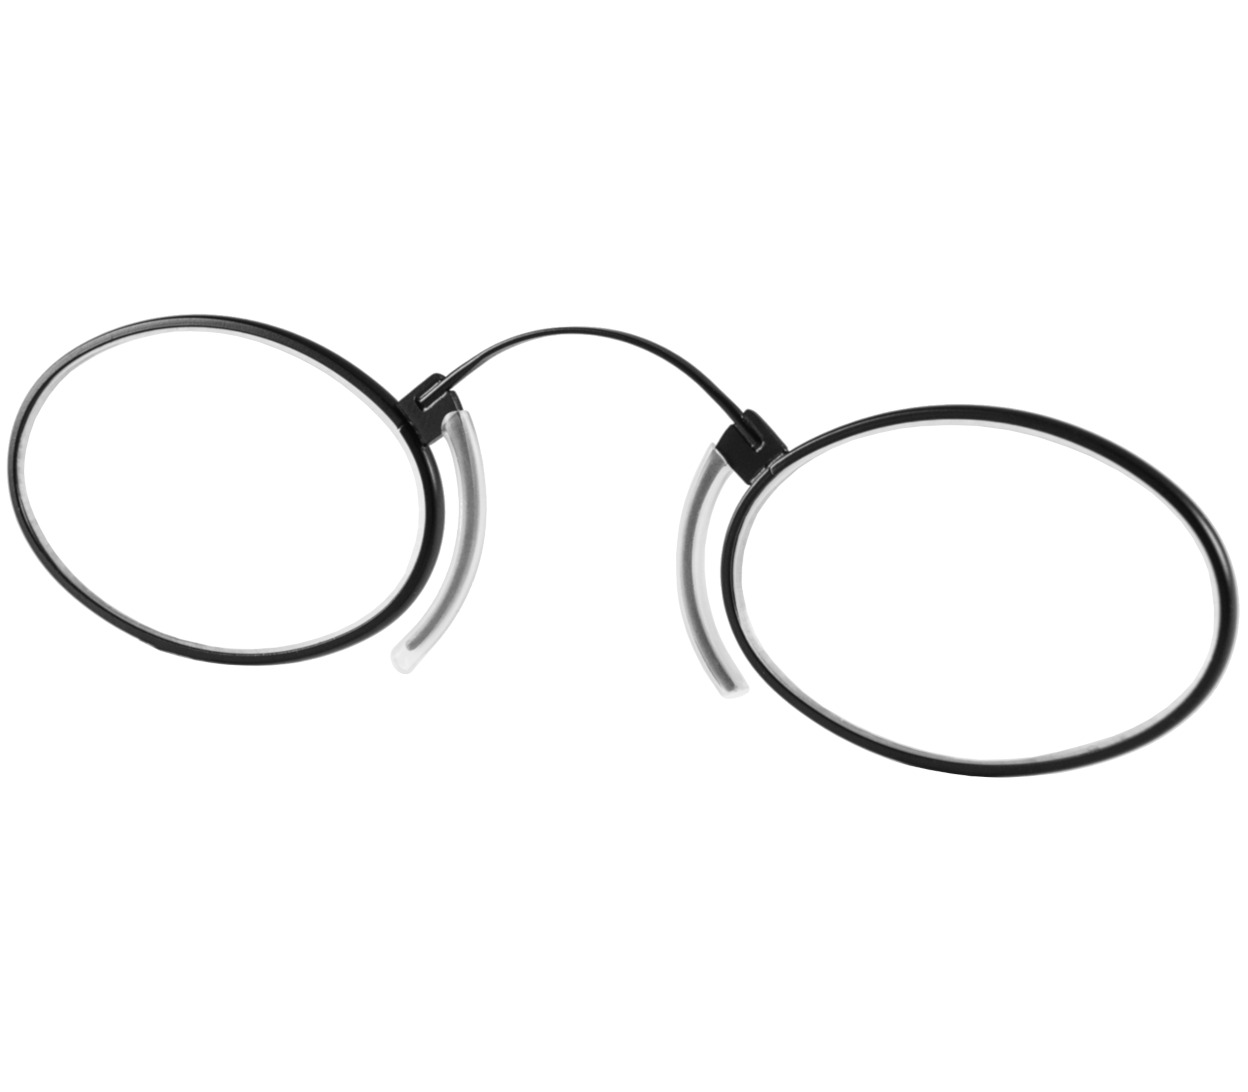 Main Image (Angle) - Clipper (Black) Pince Nez Reading Glasses